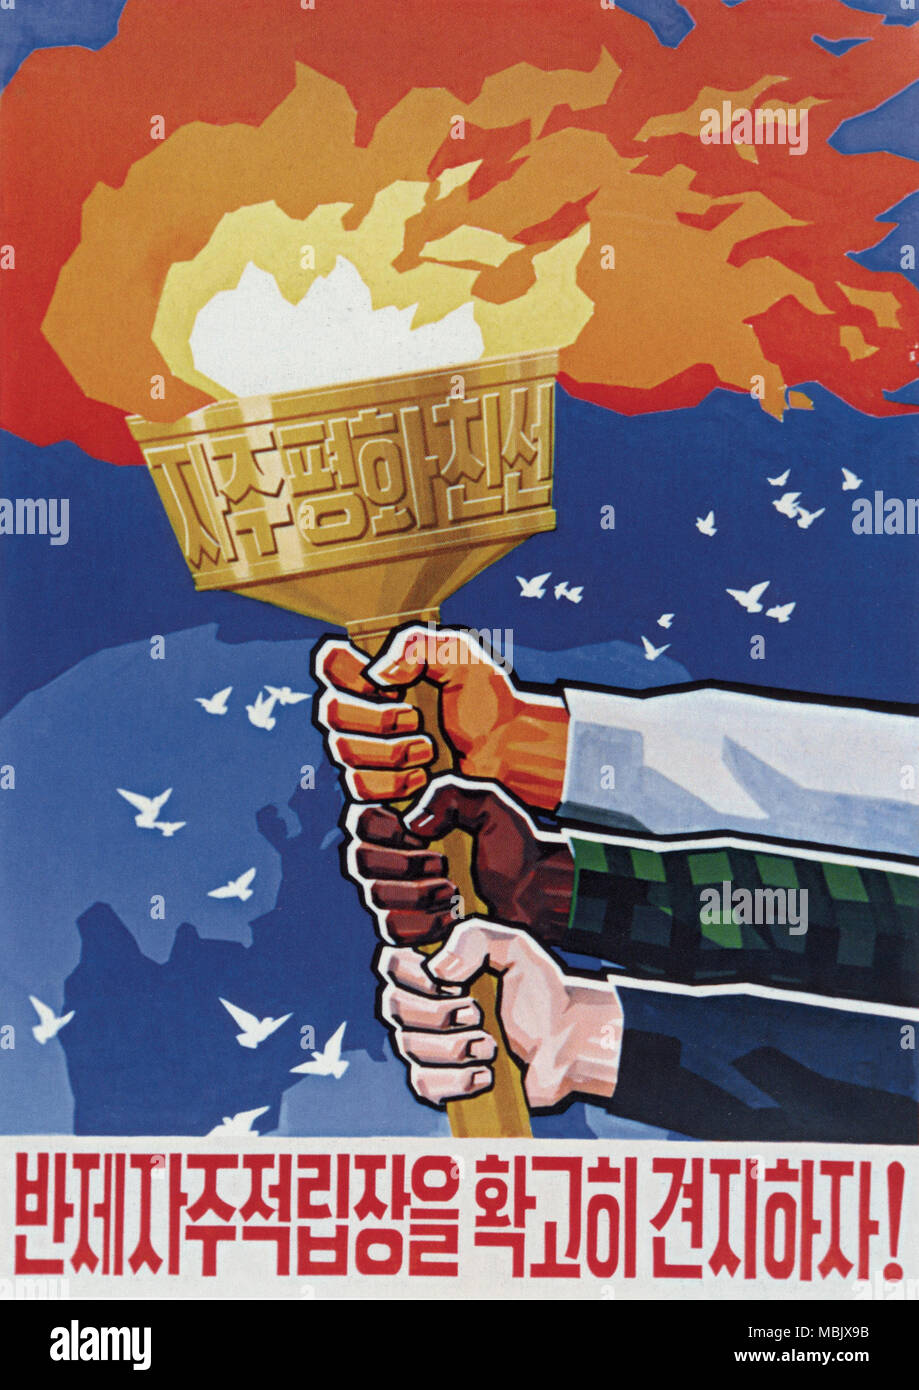 Staunchly maintain our anti-imperialist & independent instance. - Stock Image